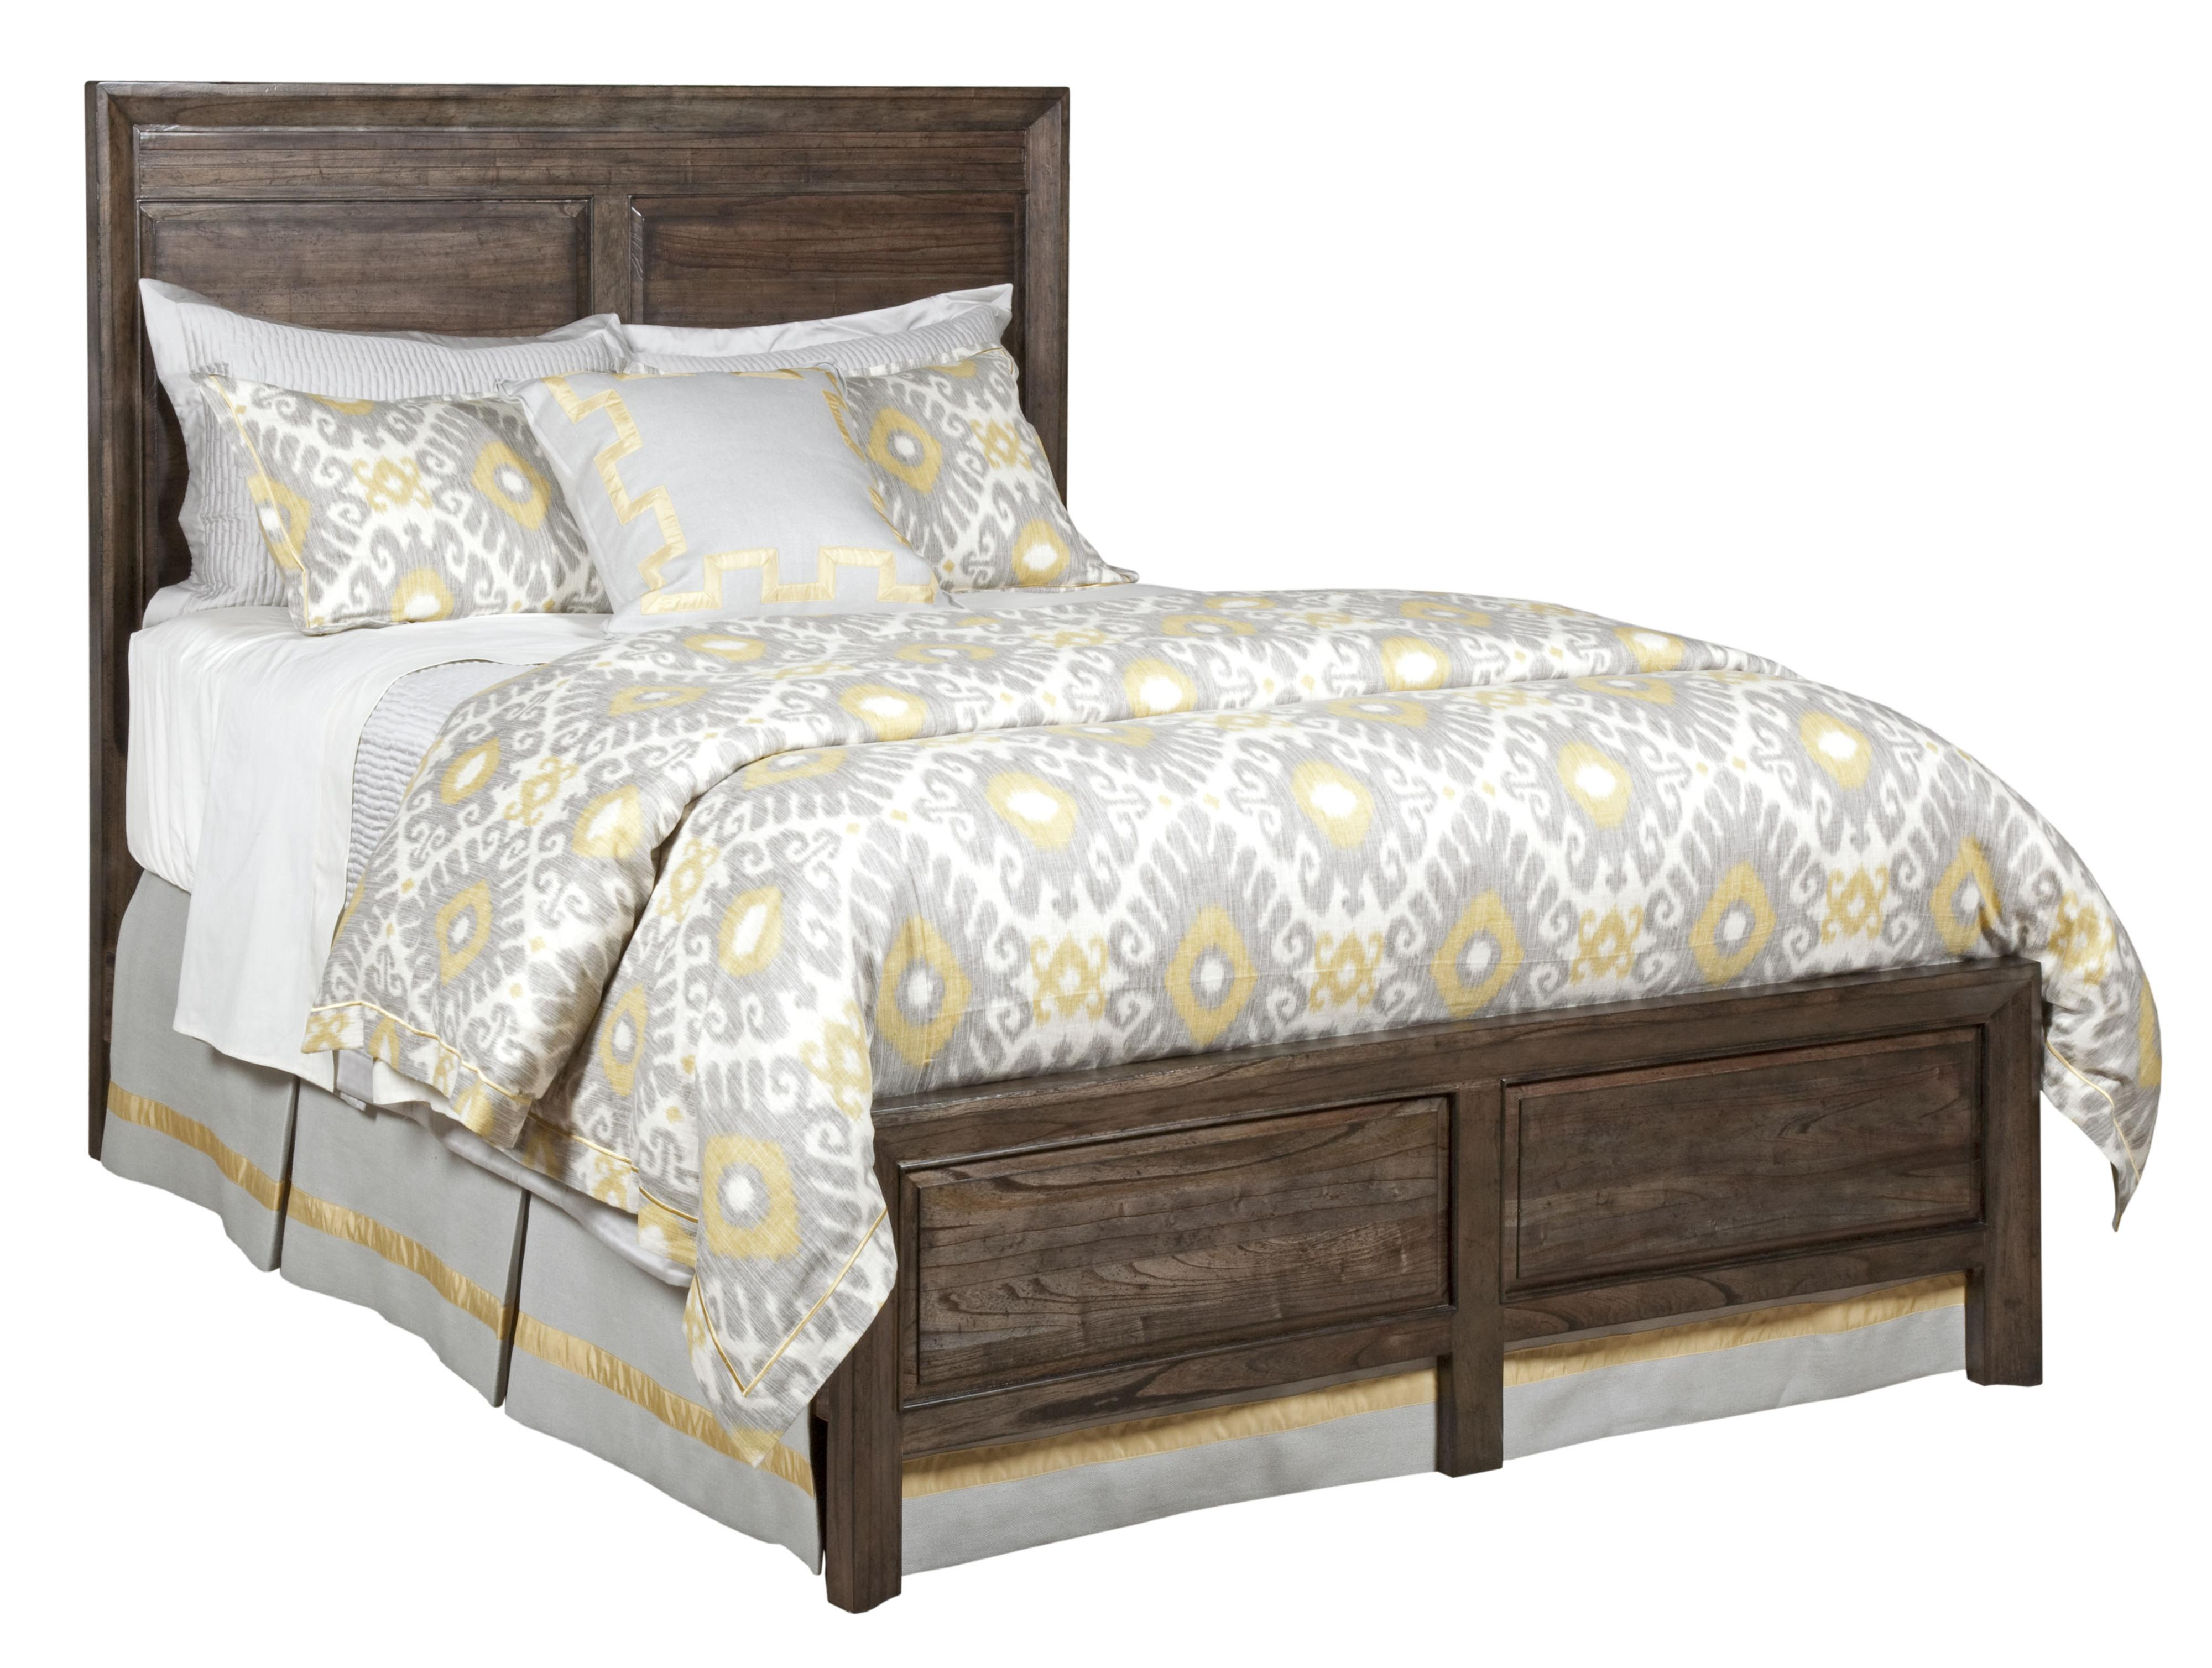 King Borders Panel Bed